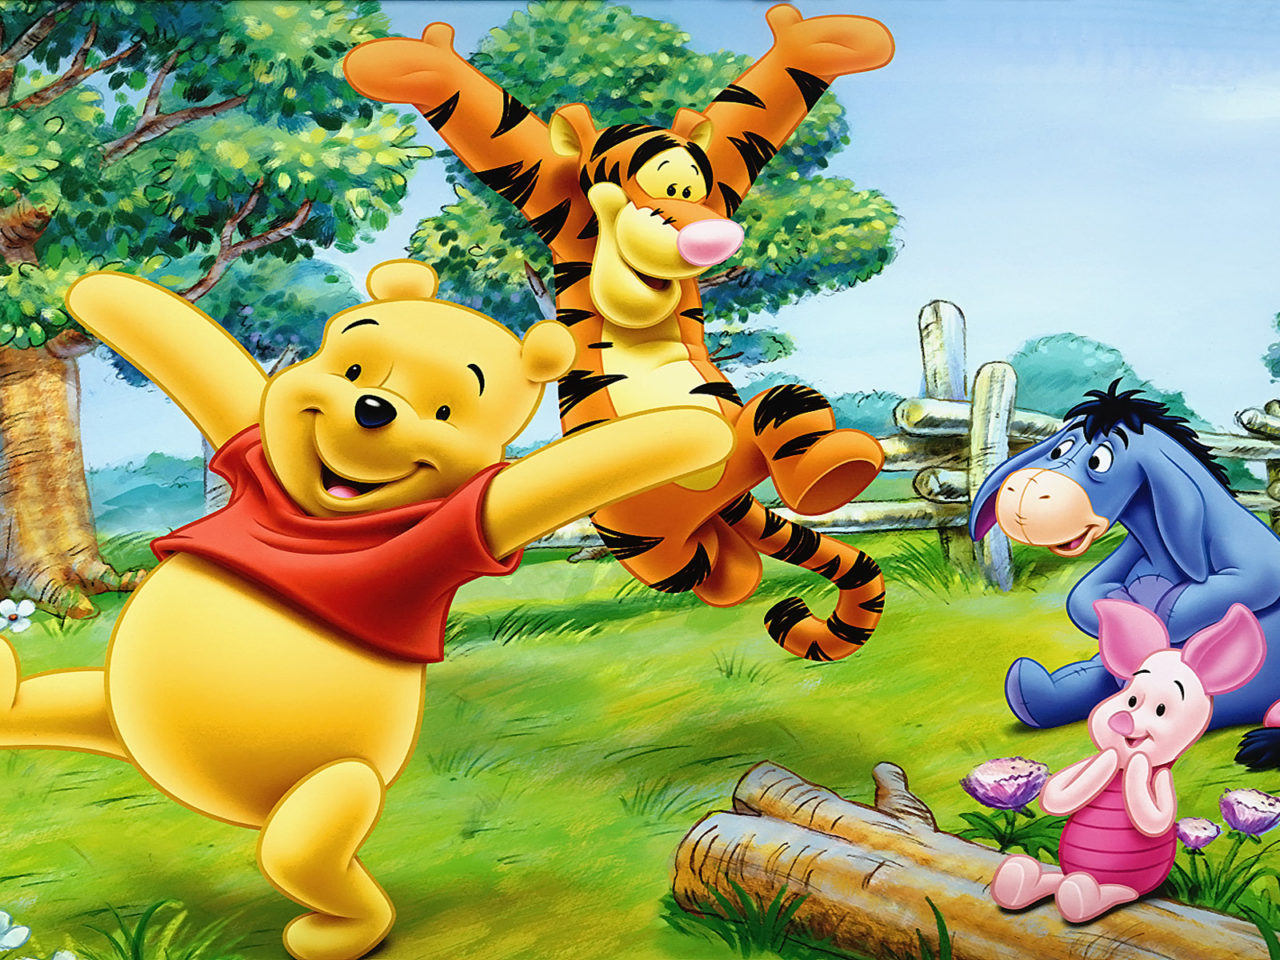 Disney Cars Wallpapers Free Cartoon Tigger Piglet And Winnie The Pooh Happy And